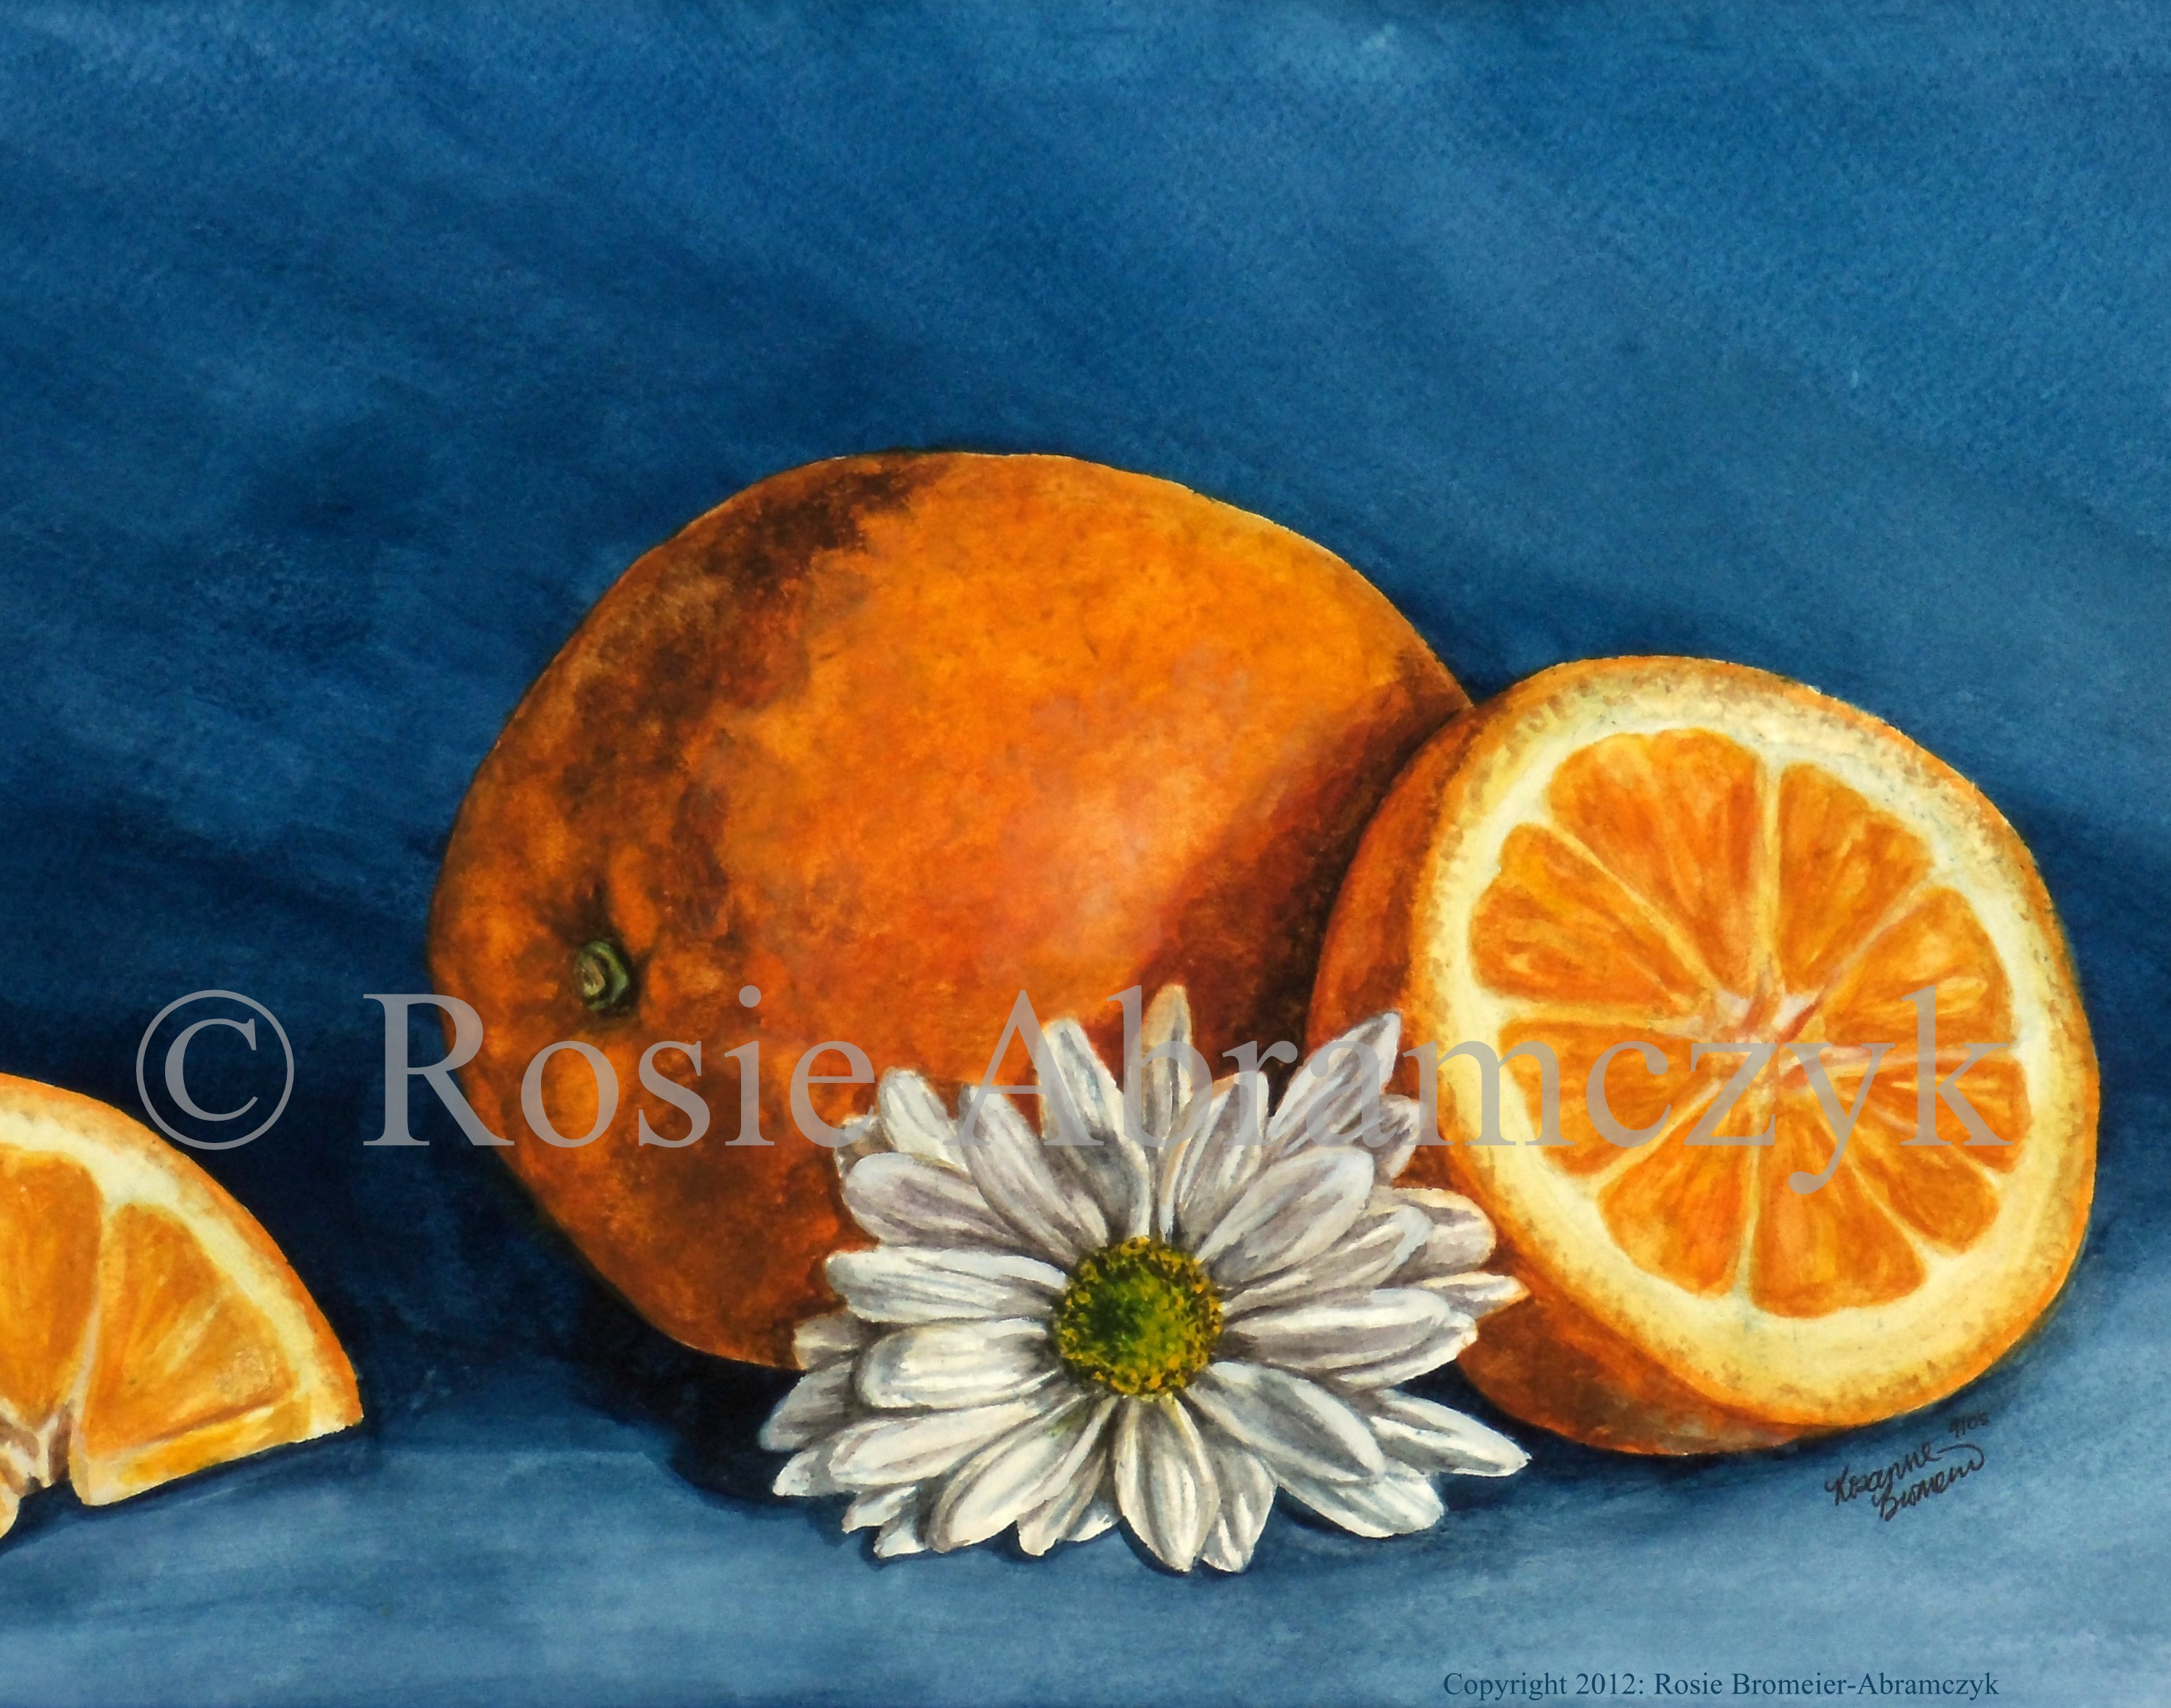 Citrus Daisy, Rosie Bromeier-Abramczyk, Watercolor, 2005